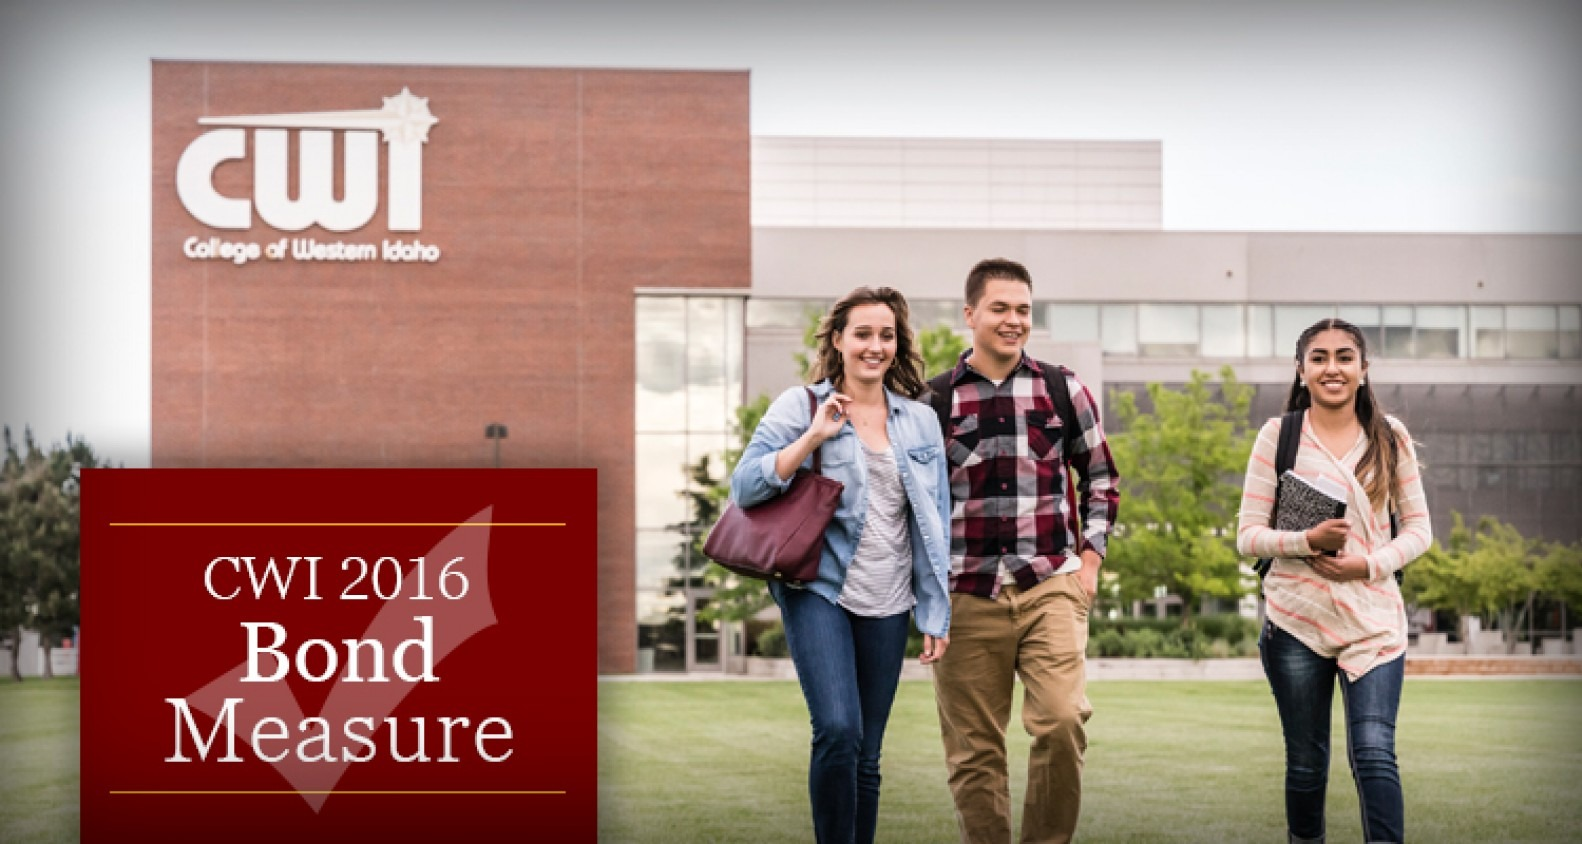 Students walking across the west lawn at Nampa Campus.